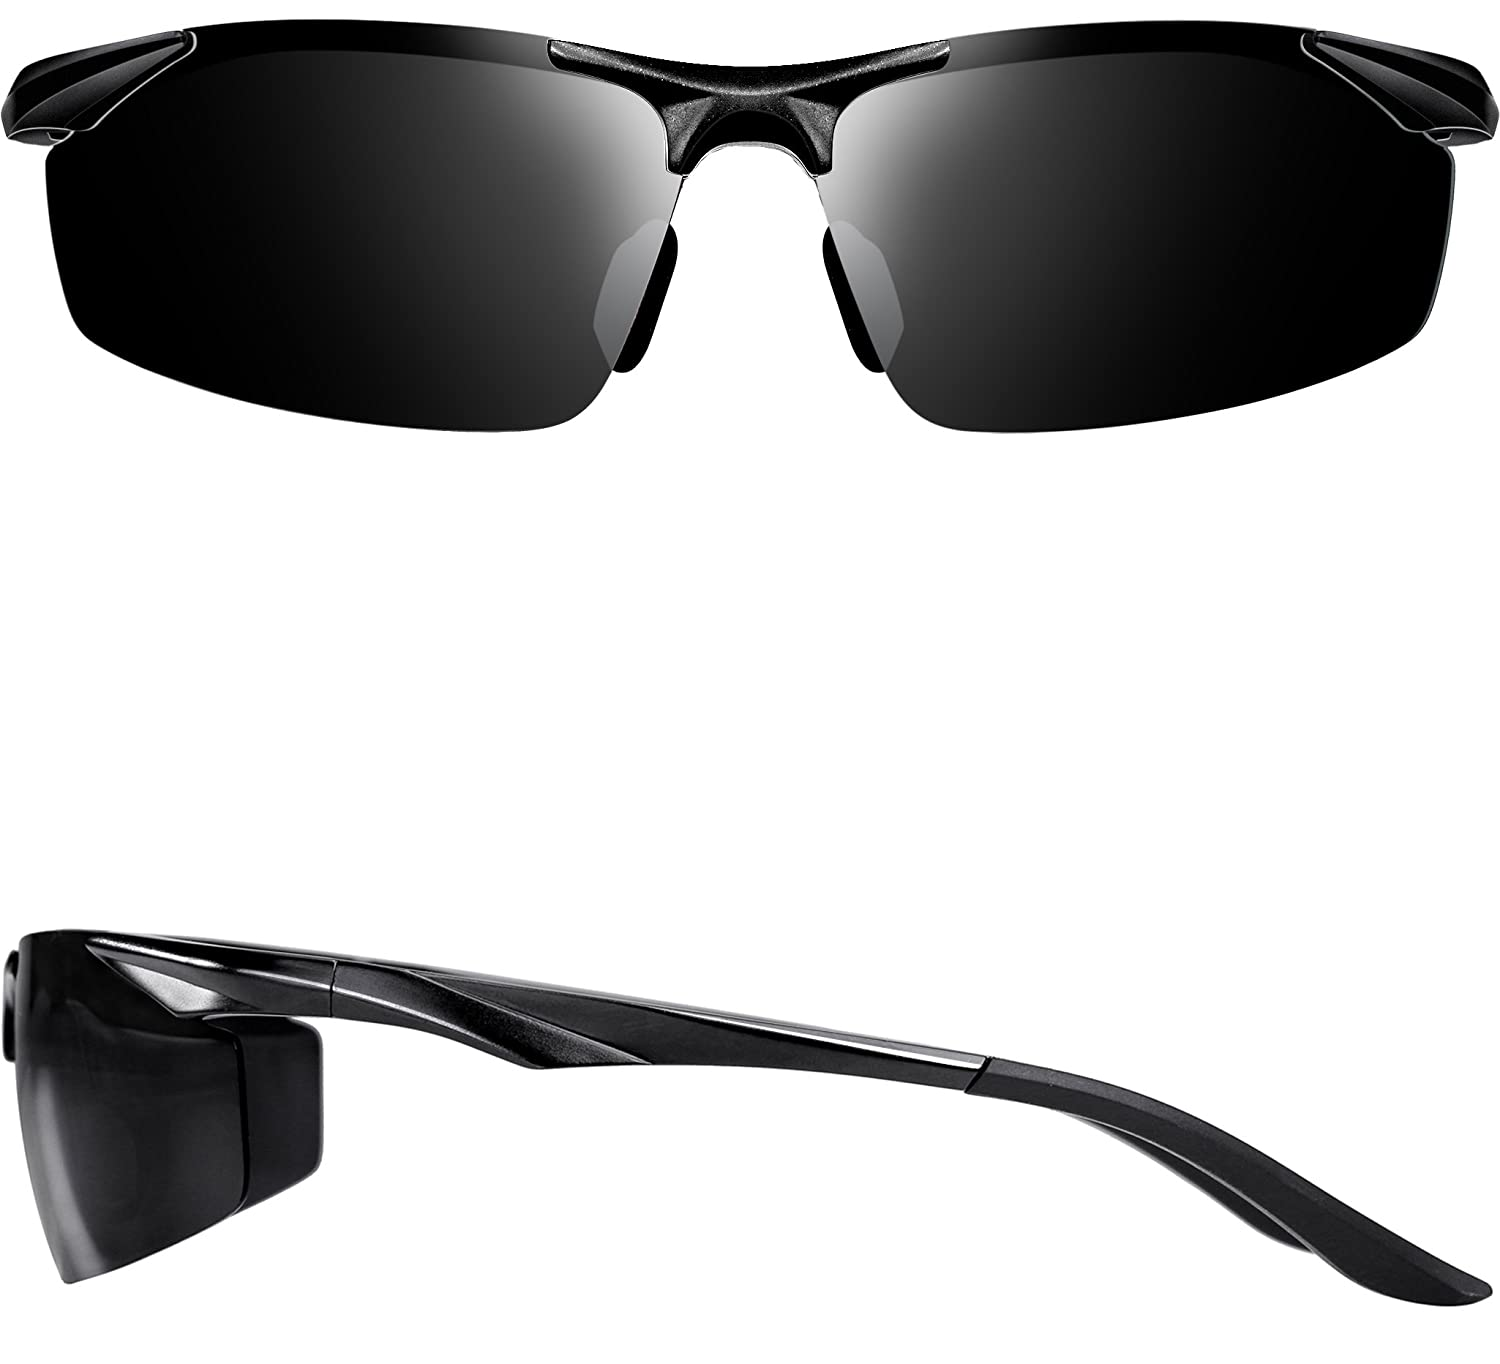 2ae03fef09 Amazon.com  ATTCL Men s Sports Polarized Sunglasses Driver Golf Fishing  Al-Mg Metal Frame 2206 Black  Clothing